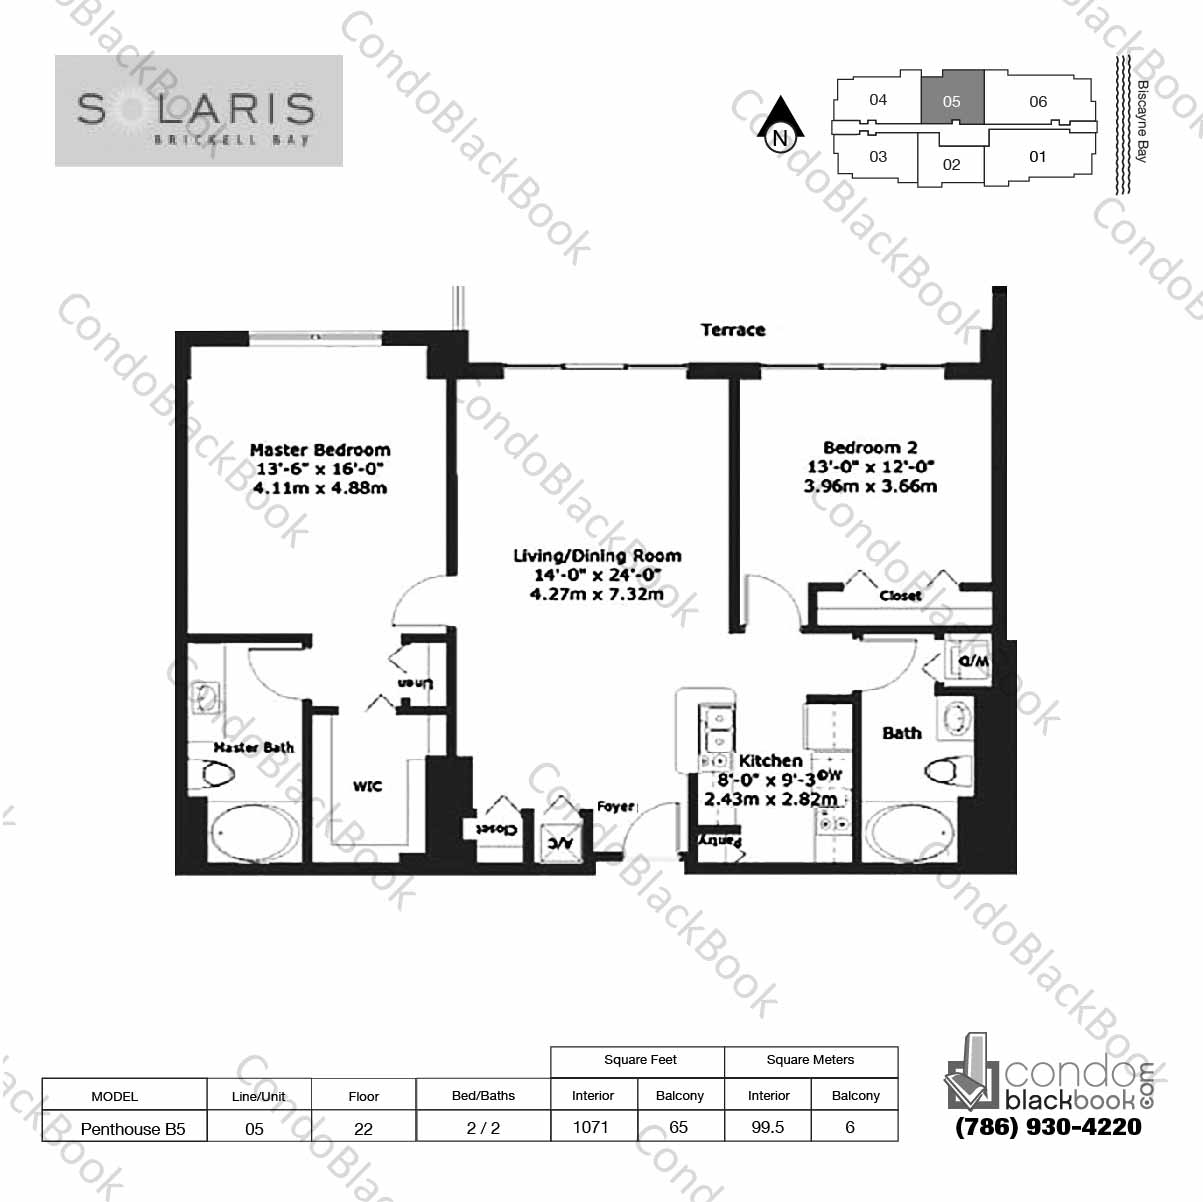 Floor plan for Solaris at Brickell Brickell Miami, model Penthouse B5, line 05,  2 / 2 bedrooms, 1071 sq ft